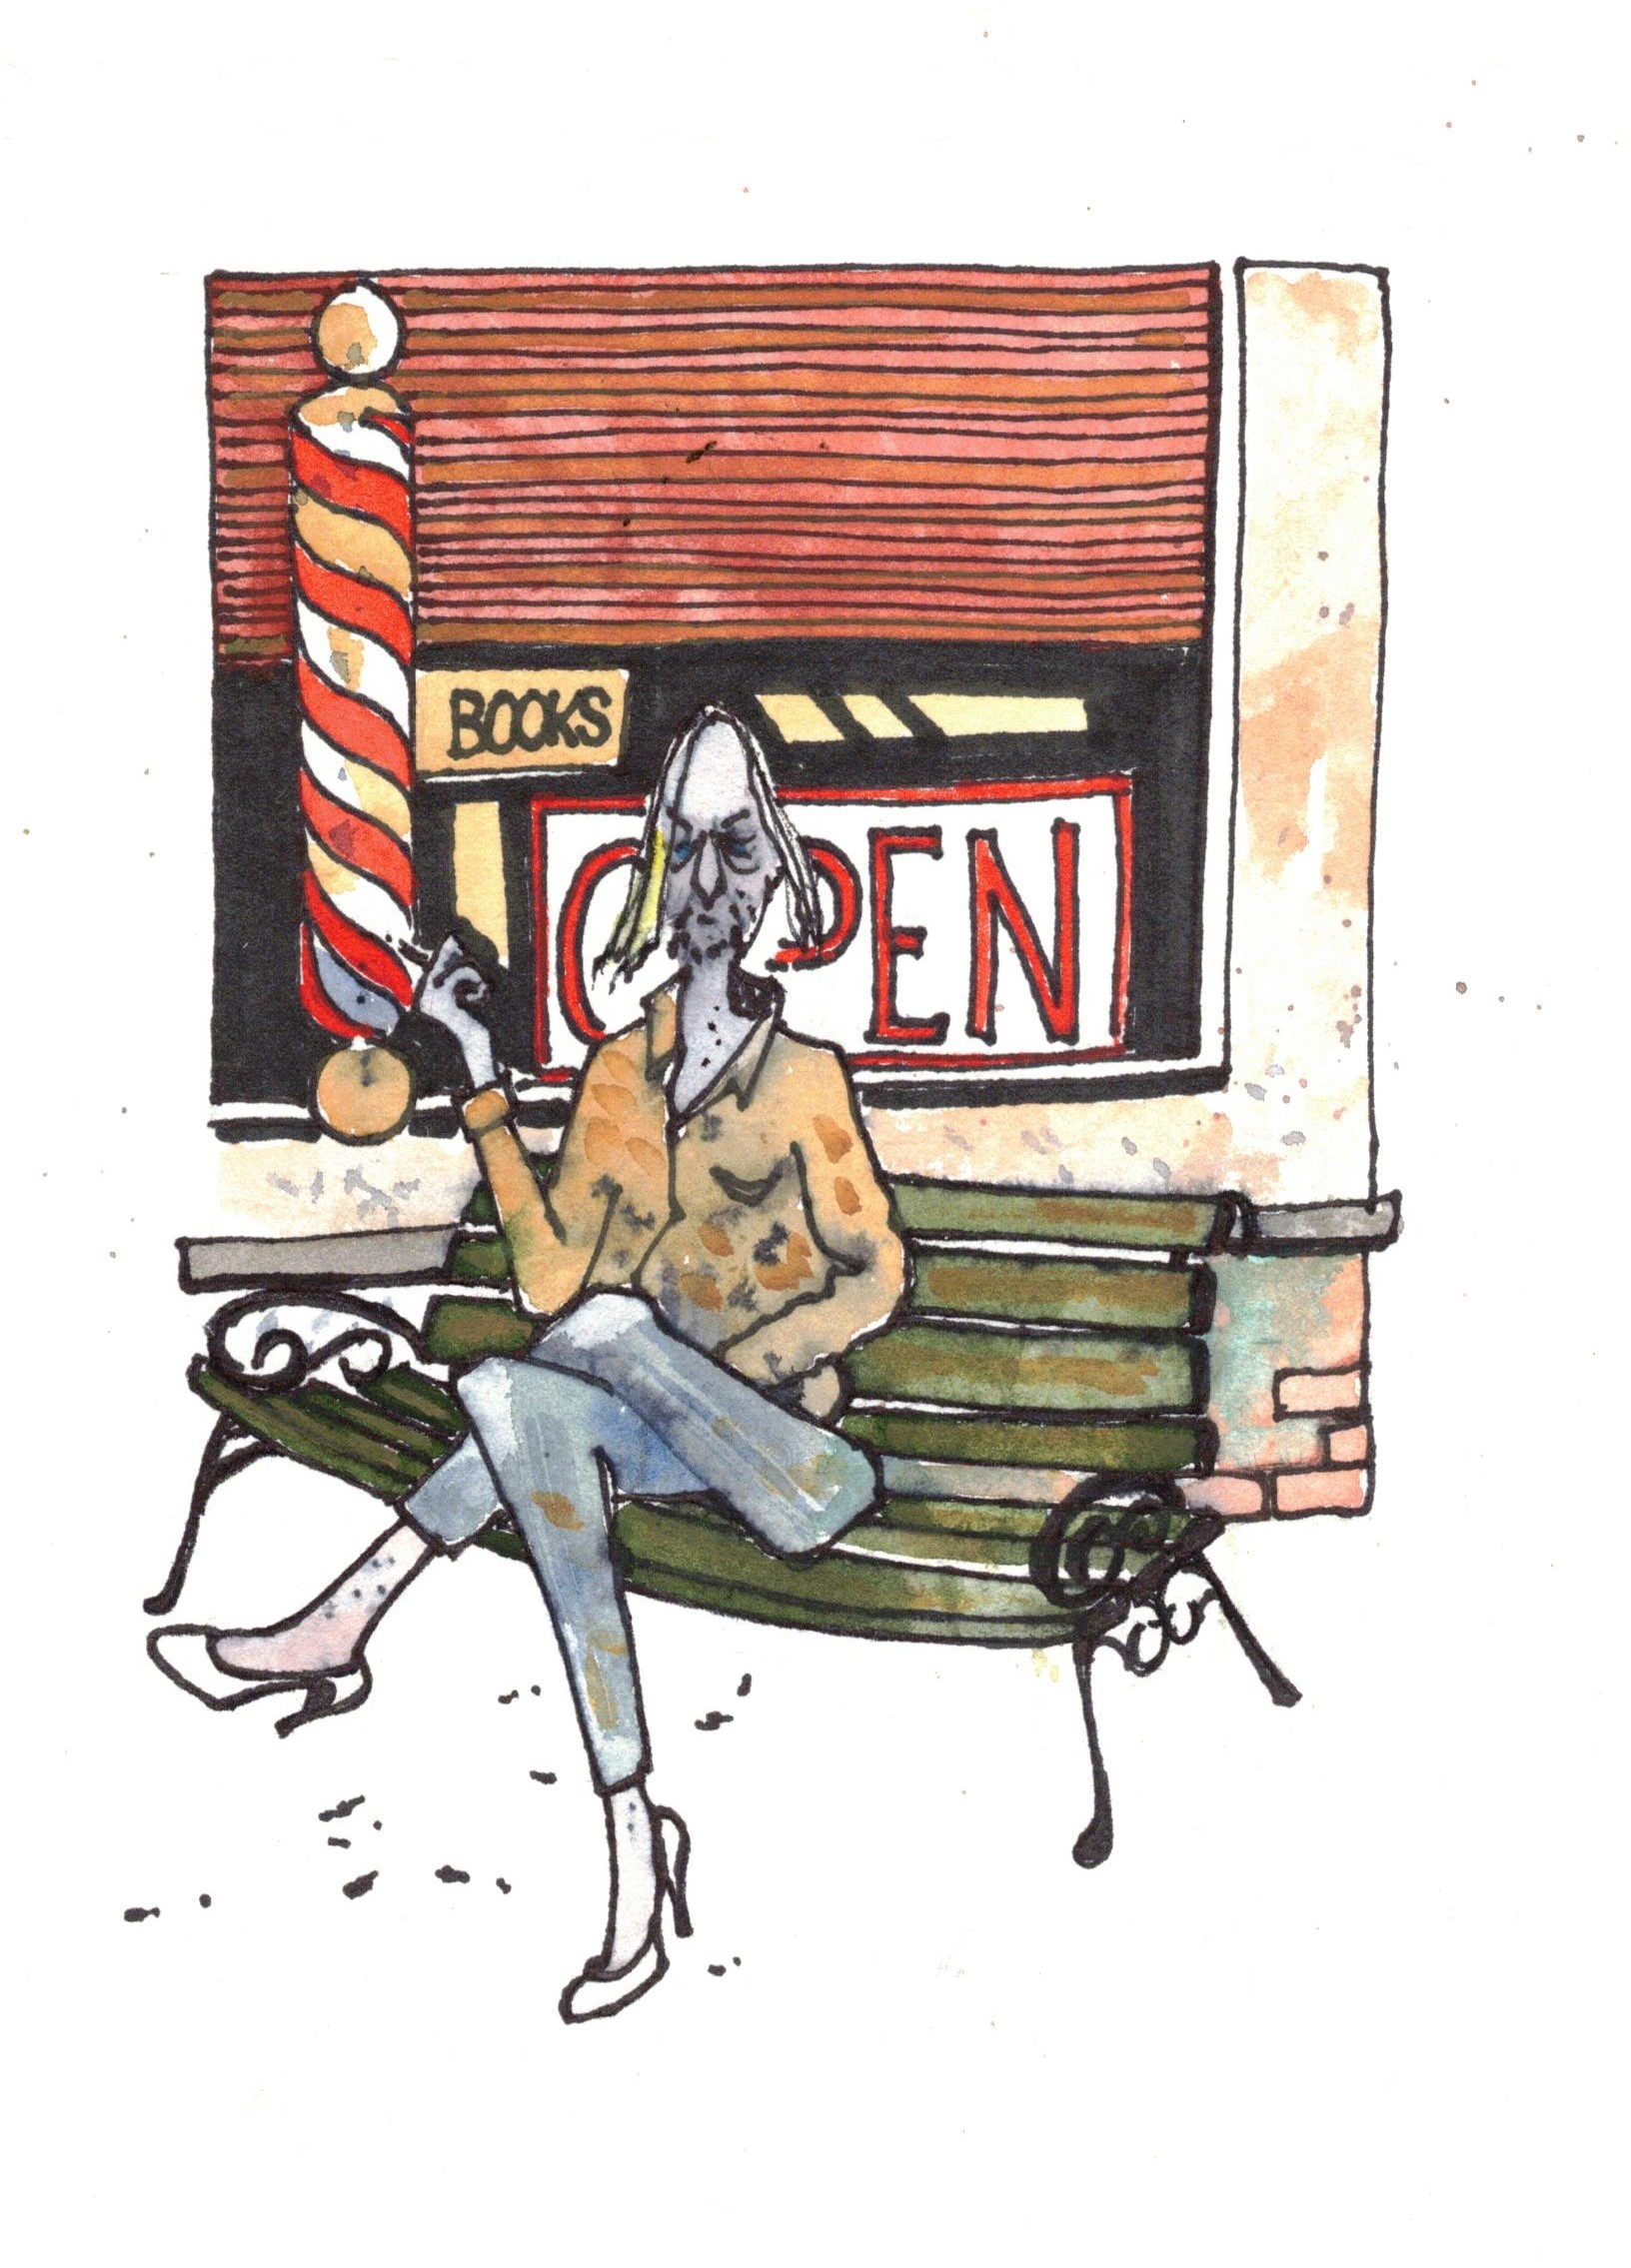 Person sitting on a bench outside Jo's Barber shop in Beaverton smoking a cigarette.